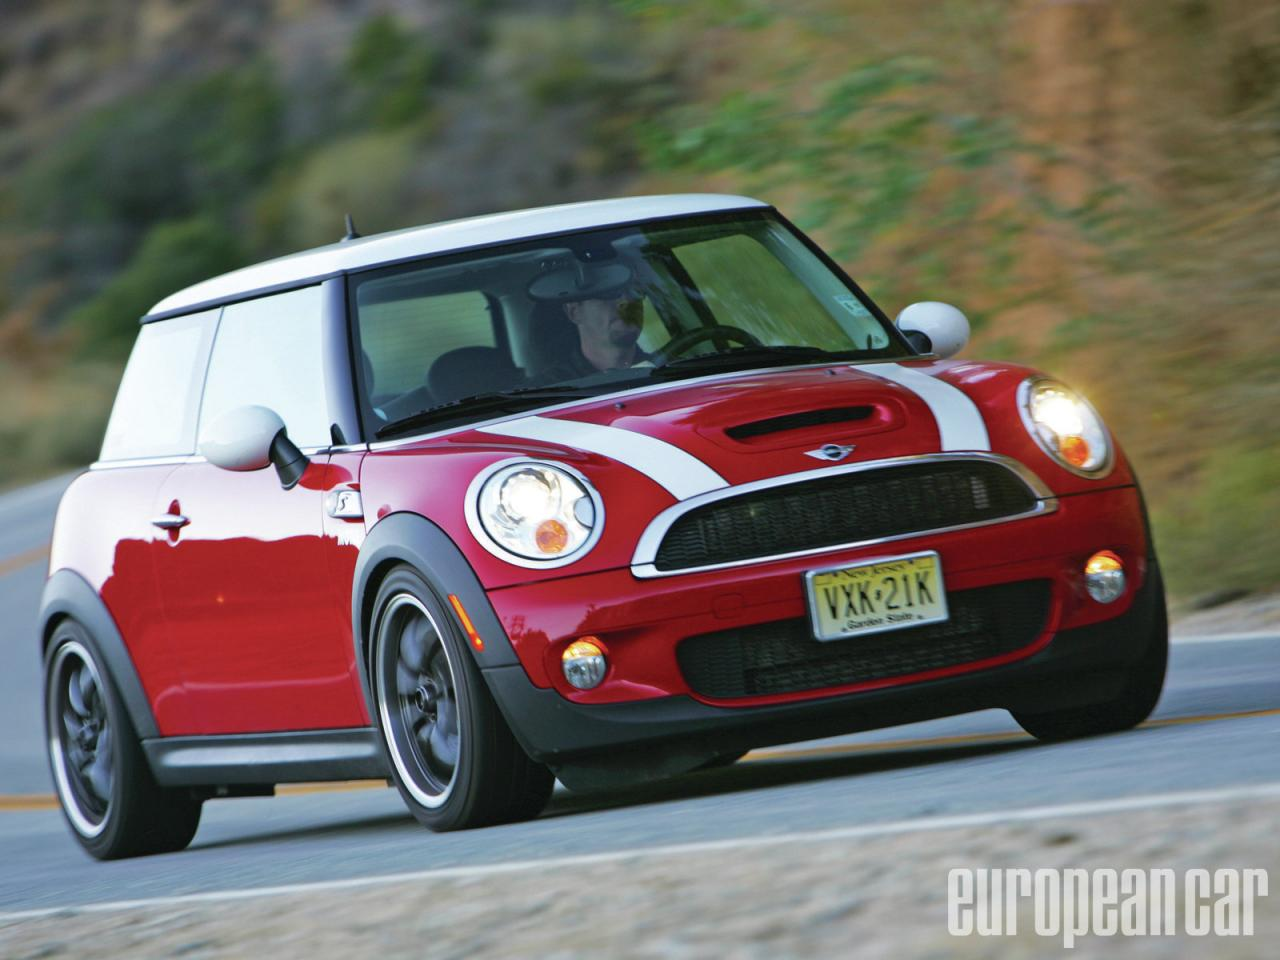 2008 mini cooper information and photos zombiedrive. Black Bedroom Furniture Sets. Home Design Ideas